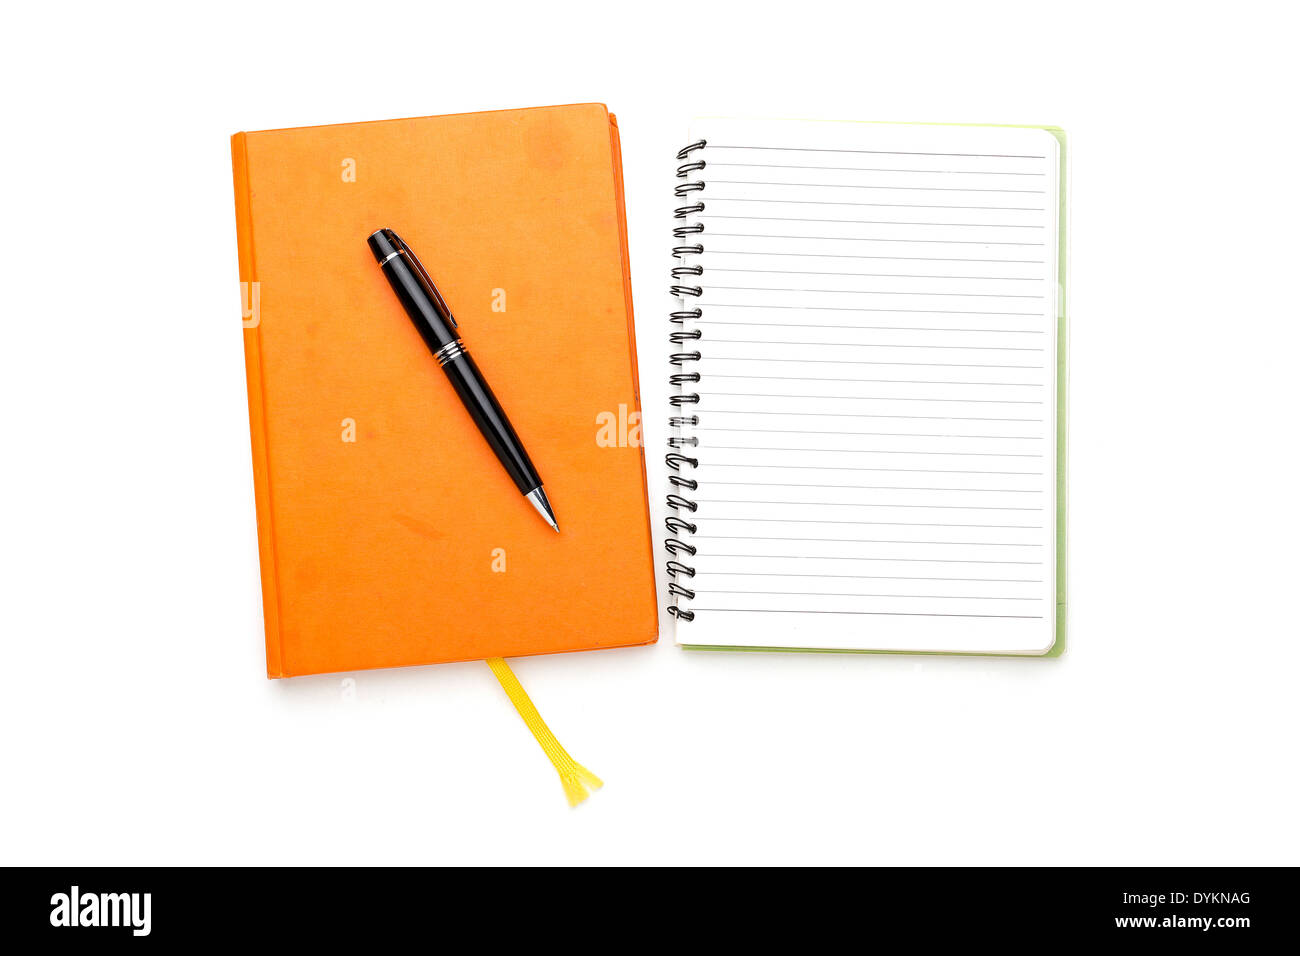 two diaries with ball pen, bookmark, ring binder, one open, one closed. - Stock Image